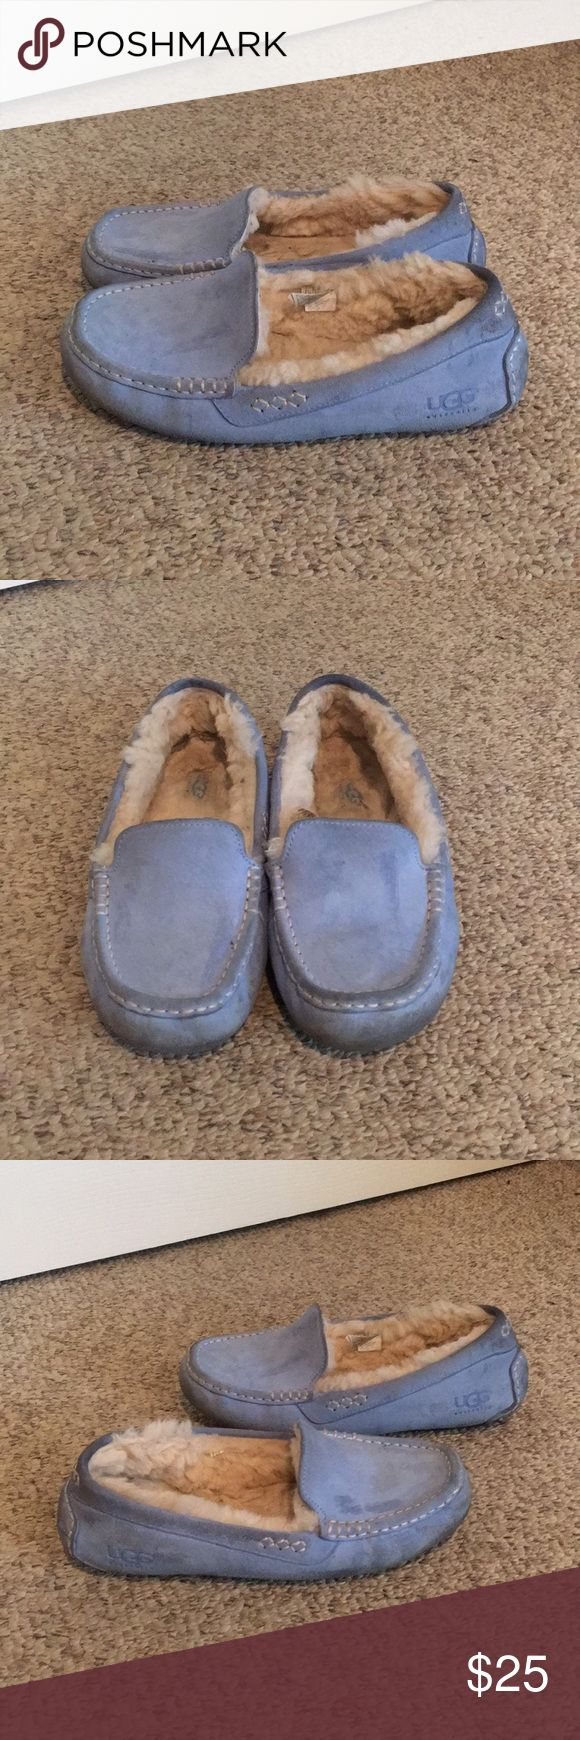 Ugg Baby Blue Ansley Sheepskin Slipper Shoes 9 This nice pair of Ugg Australia Baby Blue Suede Ansley Sheepskin Slipper Loafer Shoes comes to you in a size 9. As you can see from under the front of toe area there is some grim there. The inside of the slippers has a lot of warm Sheepskin fur inside. Ok good used cond. Makes a nice pair to walk to class in or do chores with. Not great cond just good UGG Shoes Slippers